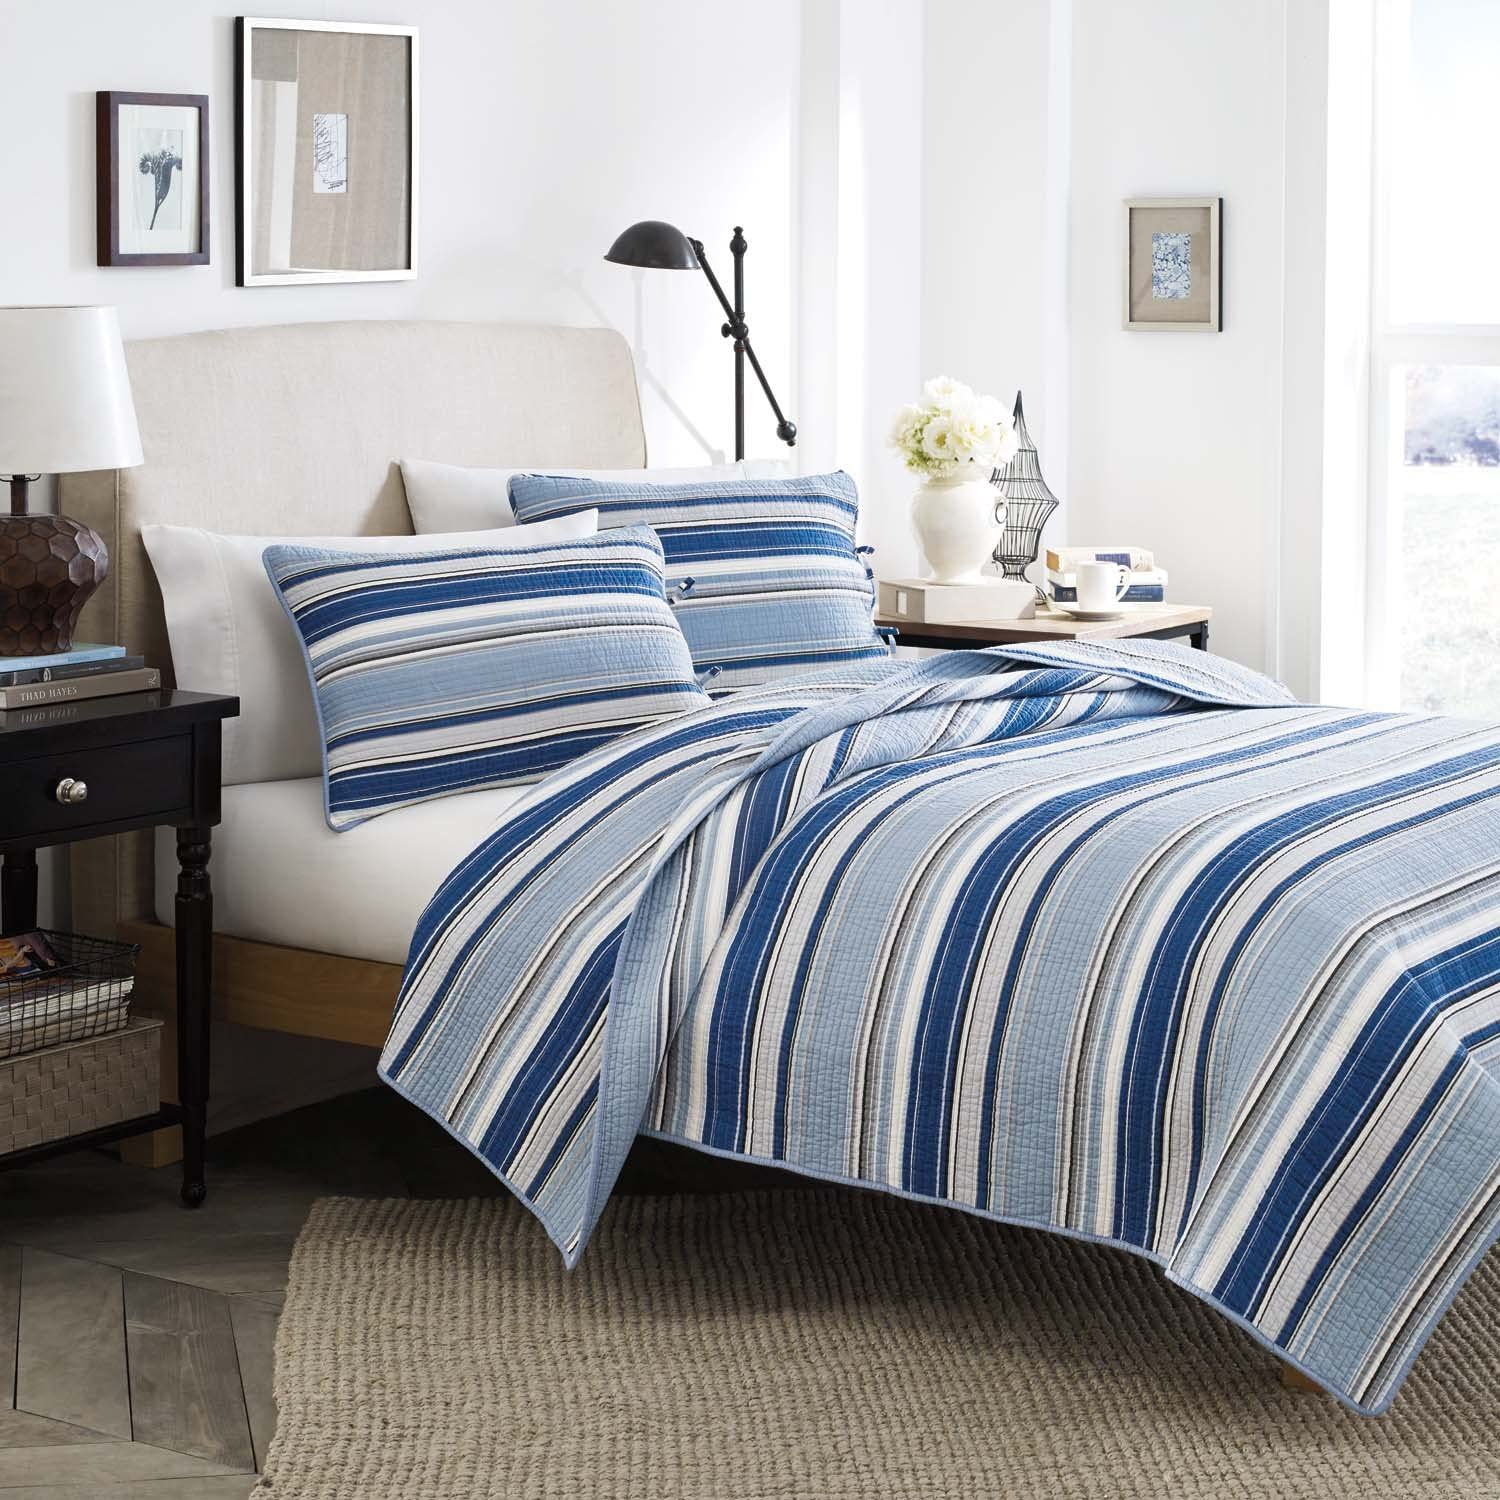 Stone Cottage Fresno Cotton Quilt Set, Full/Queen, Blue